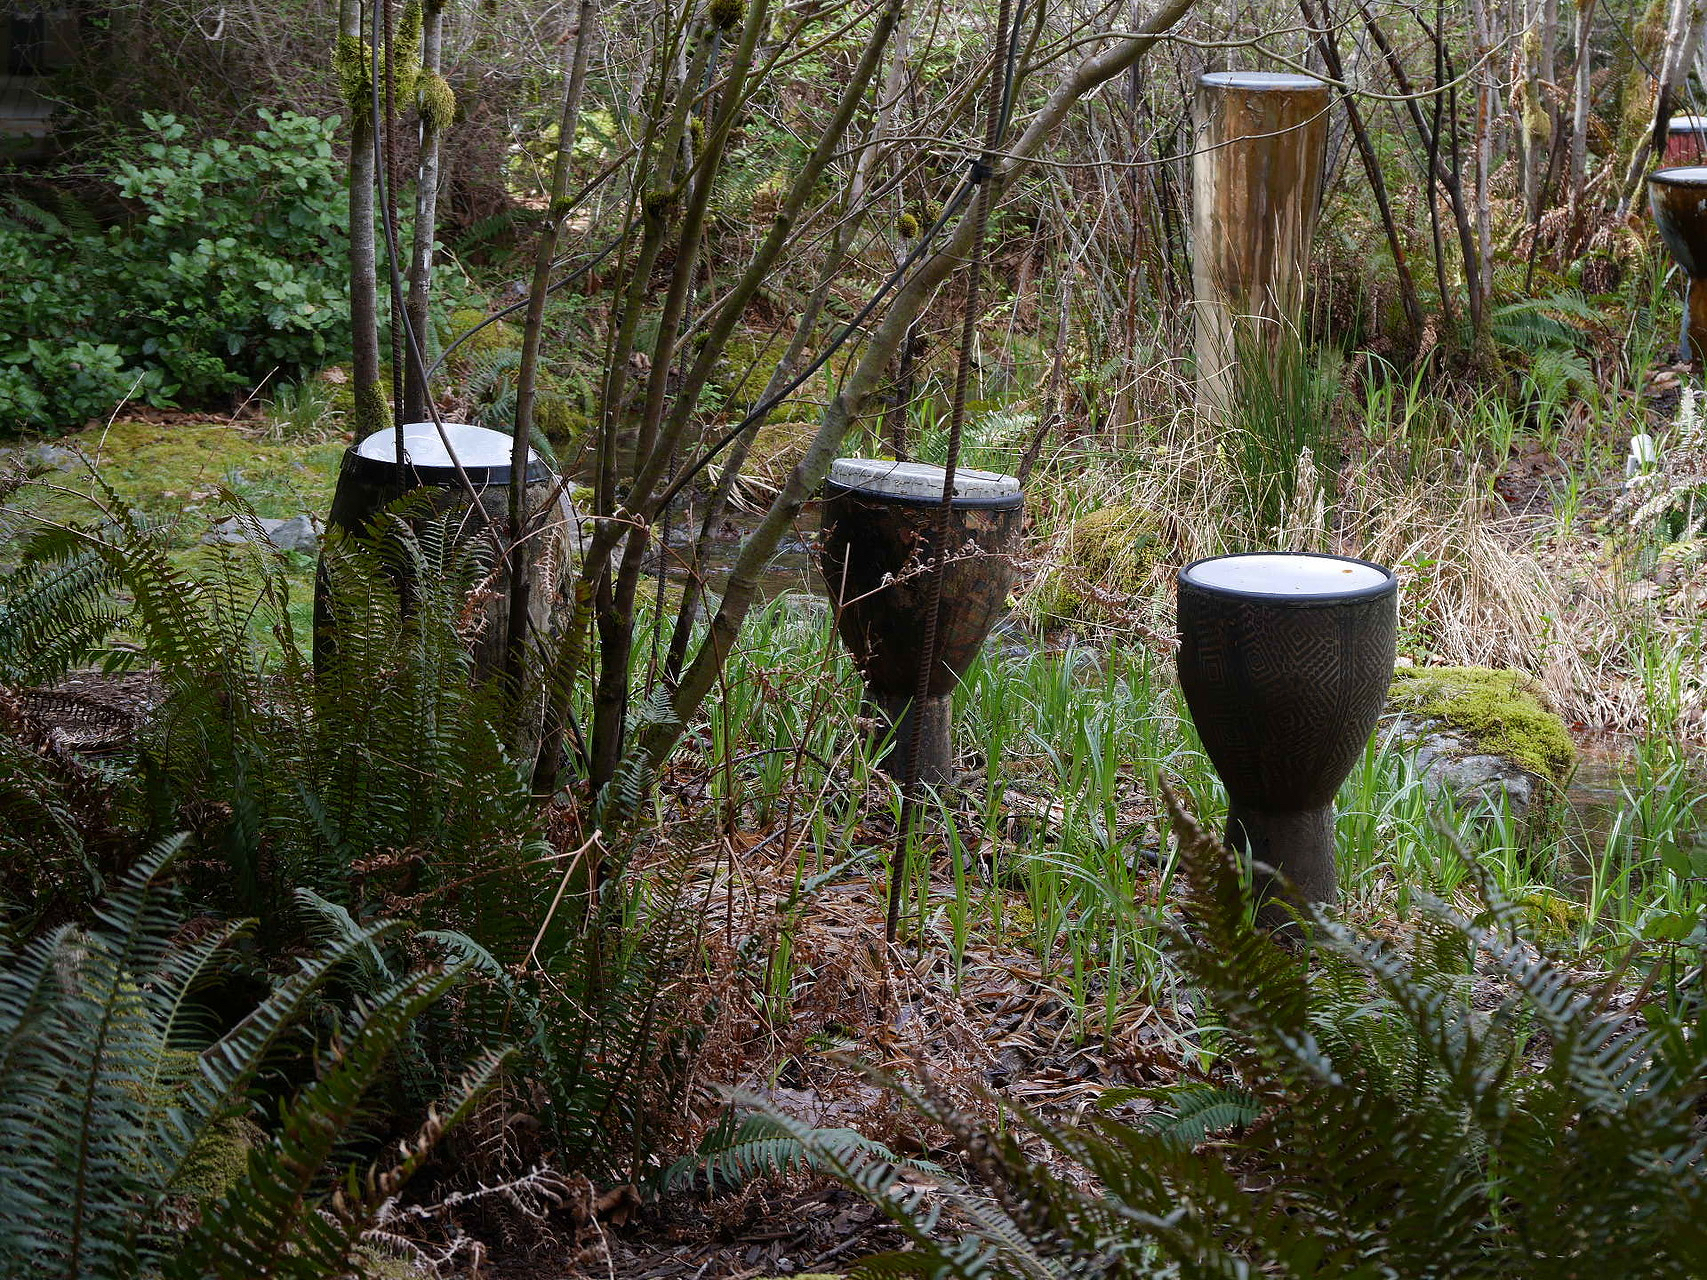 Rain drums at the Cedar River Watershed Center. Photo credit: April Chan